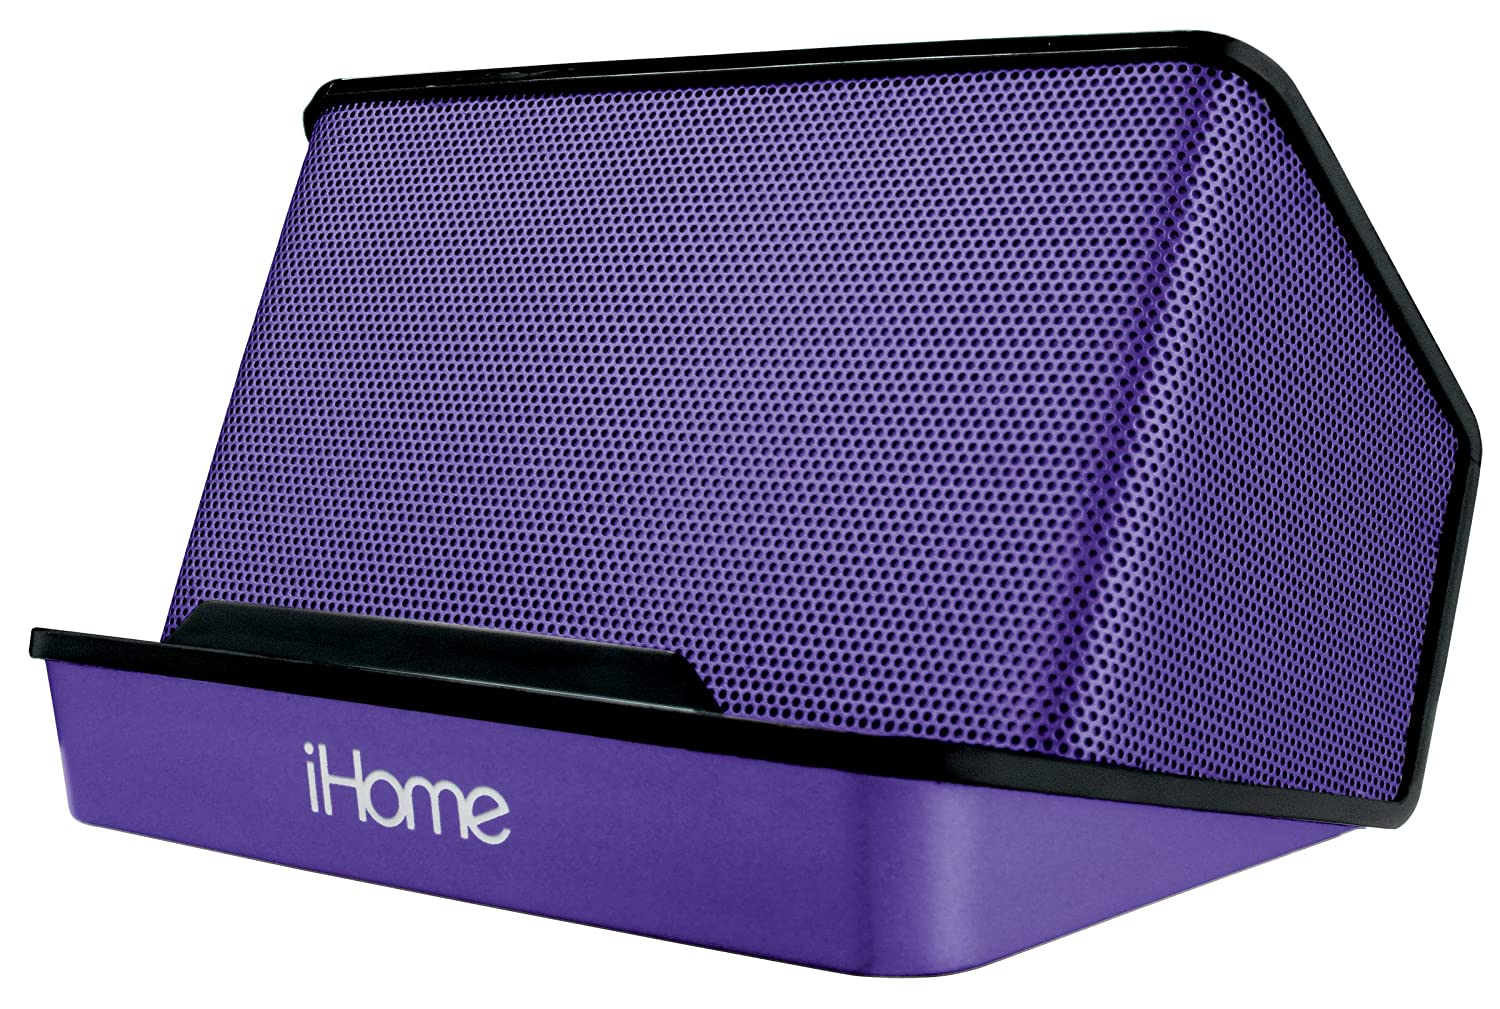 iHome Portable Rechargeable Stereo Speaker System - Purple Sound Design Inc. iHM27UC